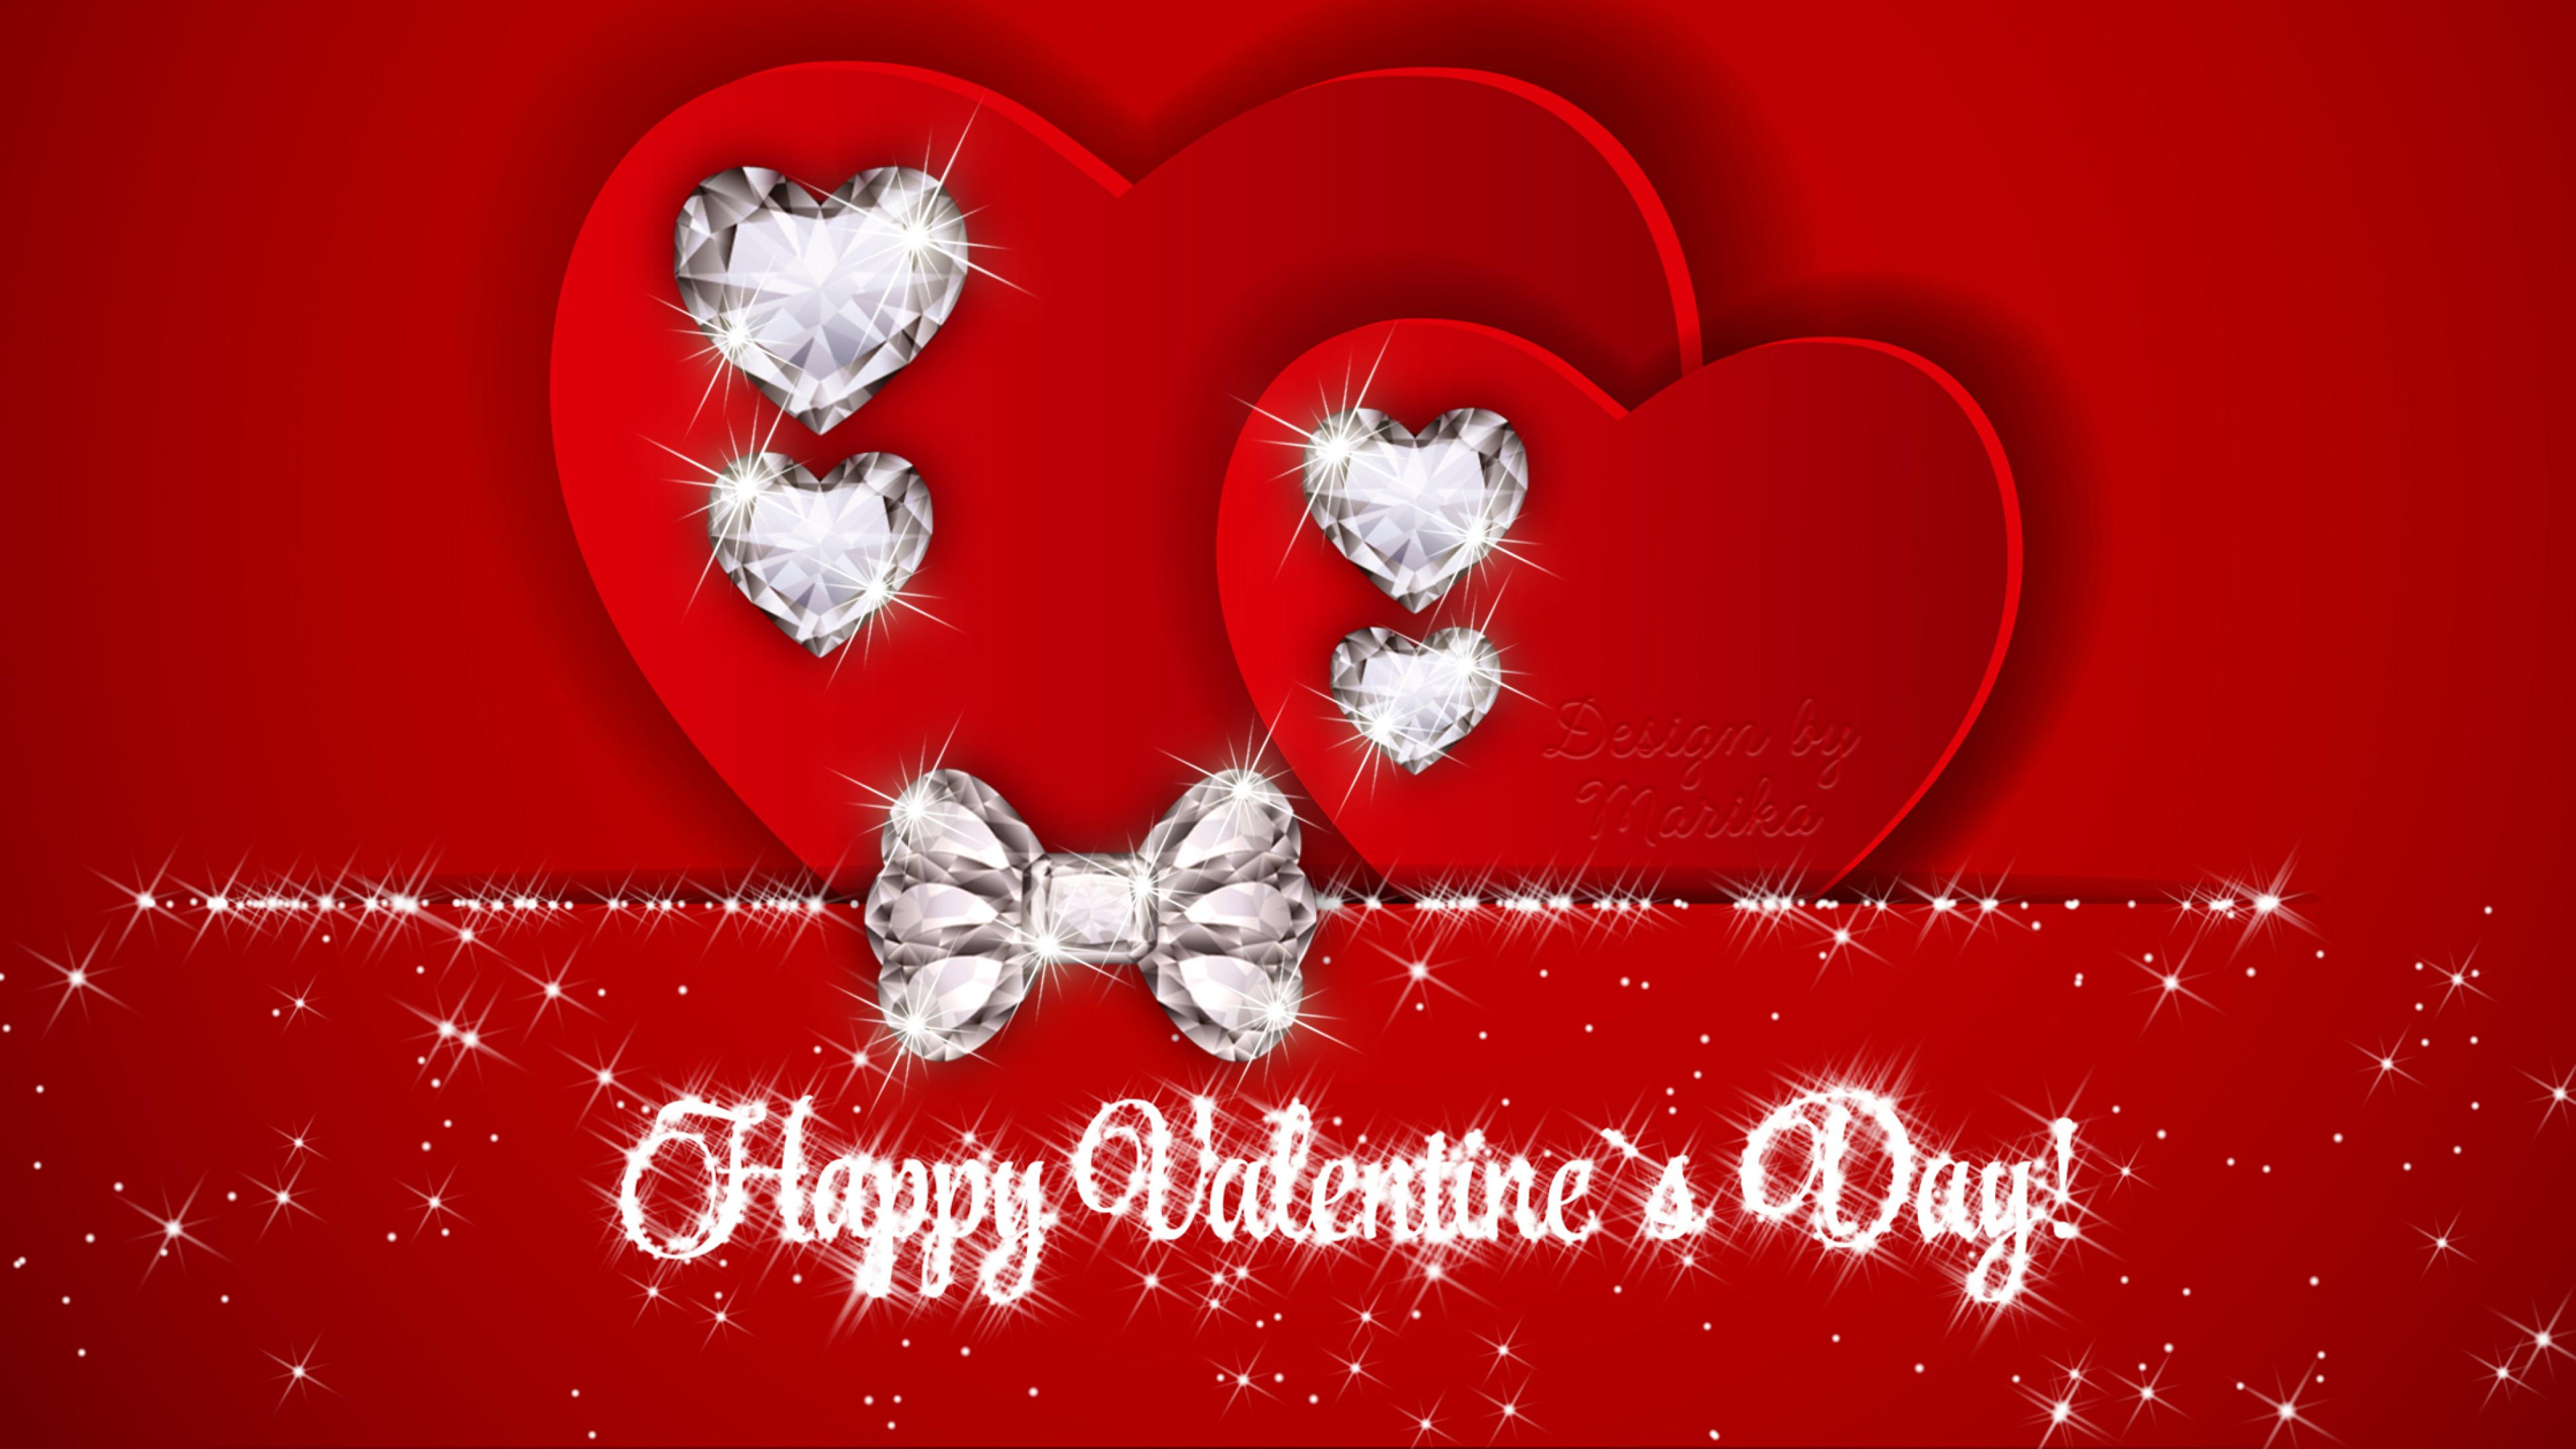 most-beautiful-wallpapers-hd-free-valentine-day - hd wallpaper